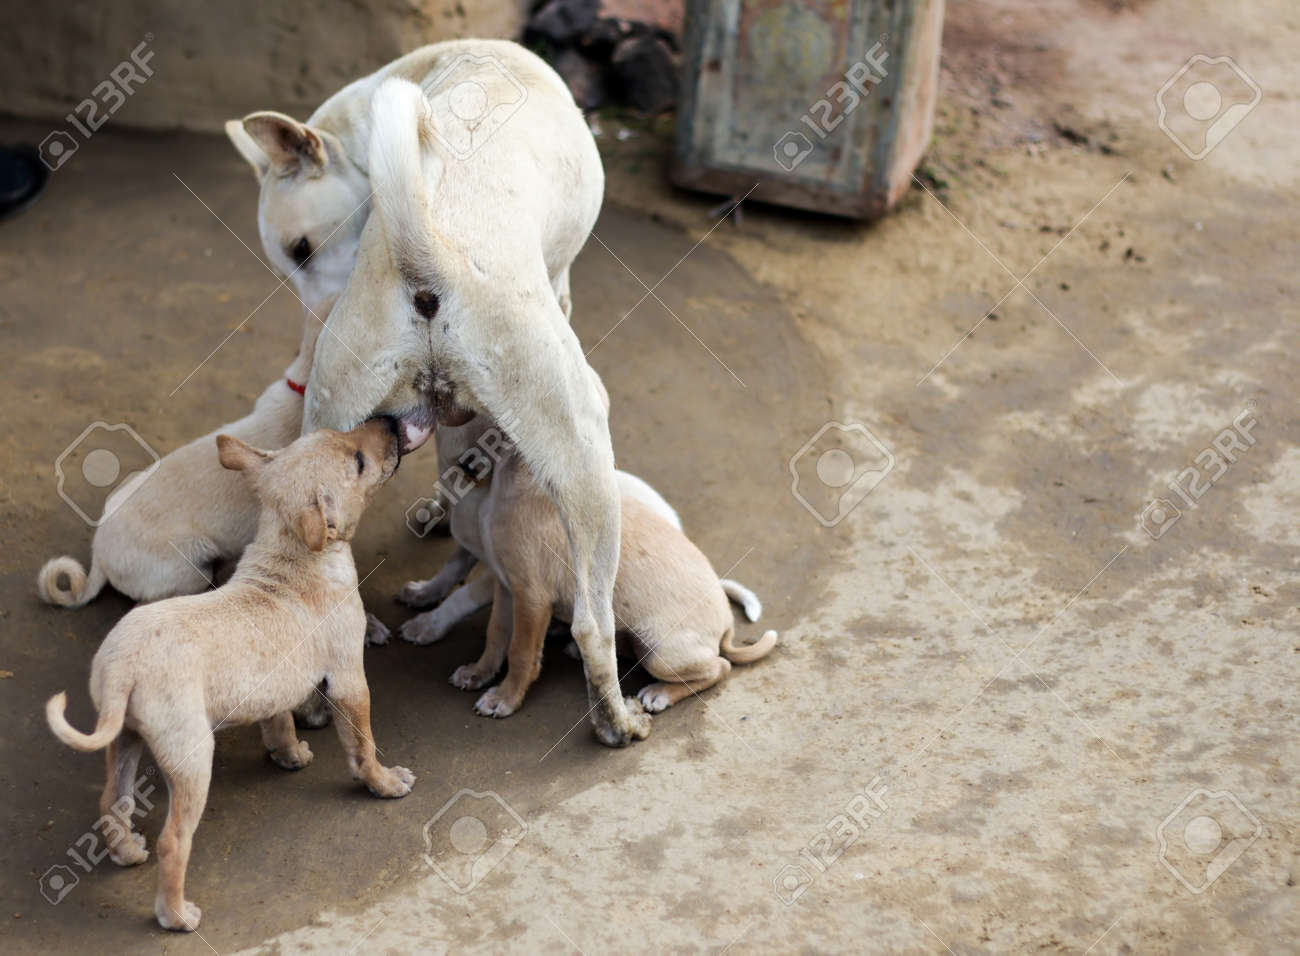 puppies of indian street dogs suckling tits of mother dog